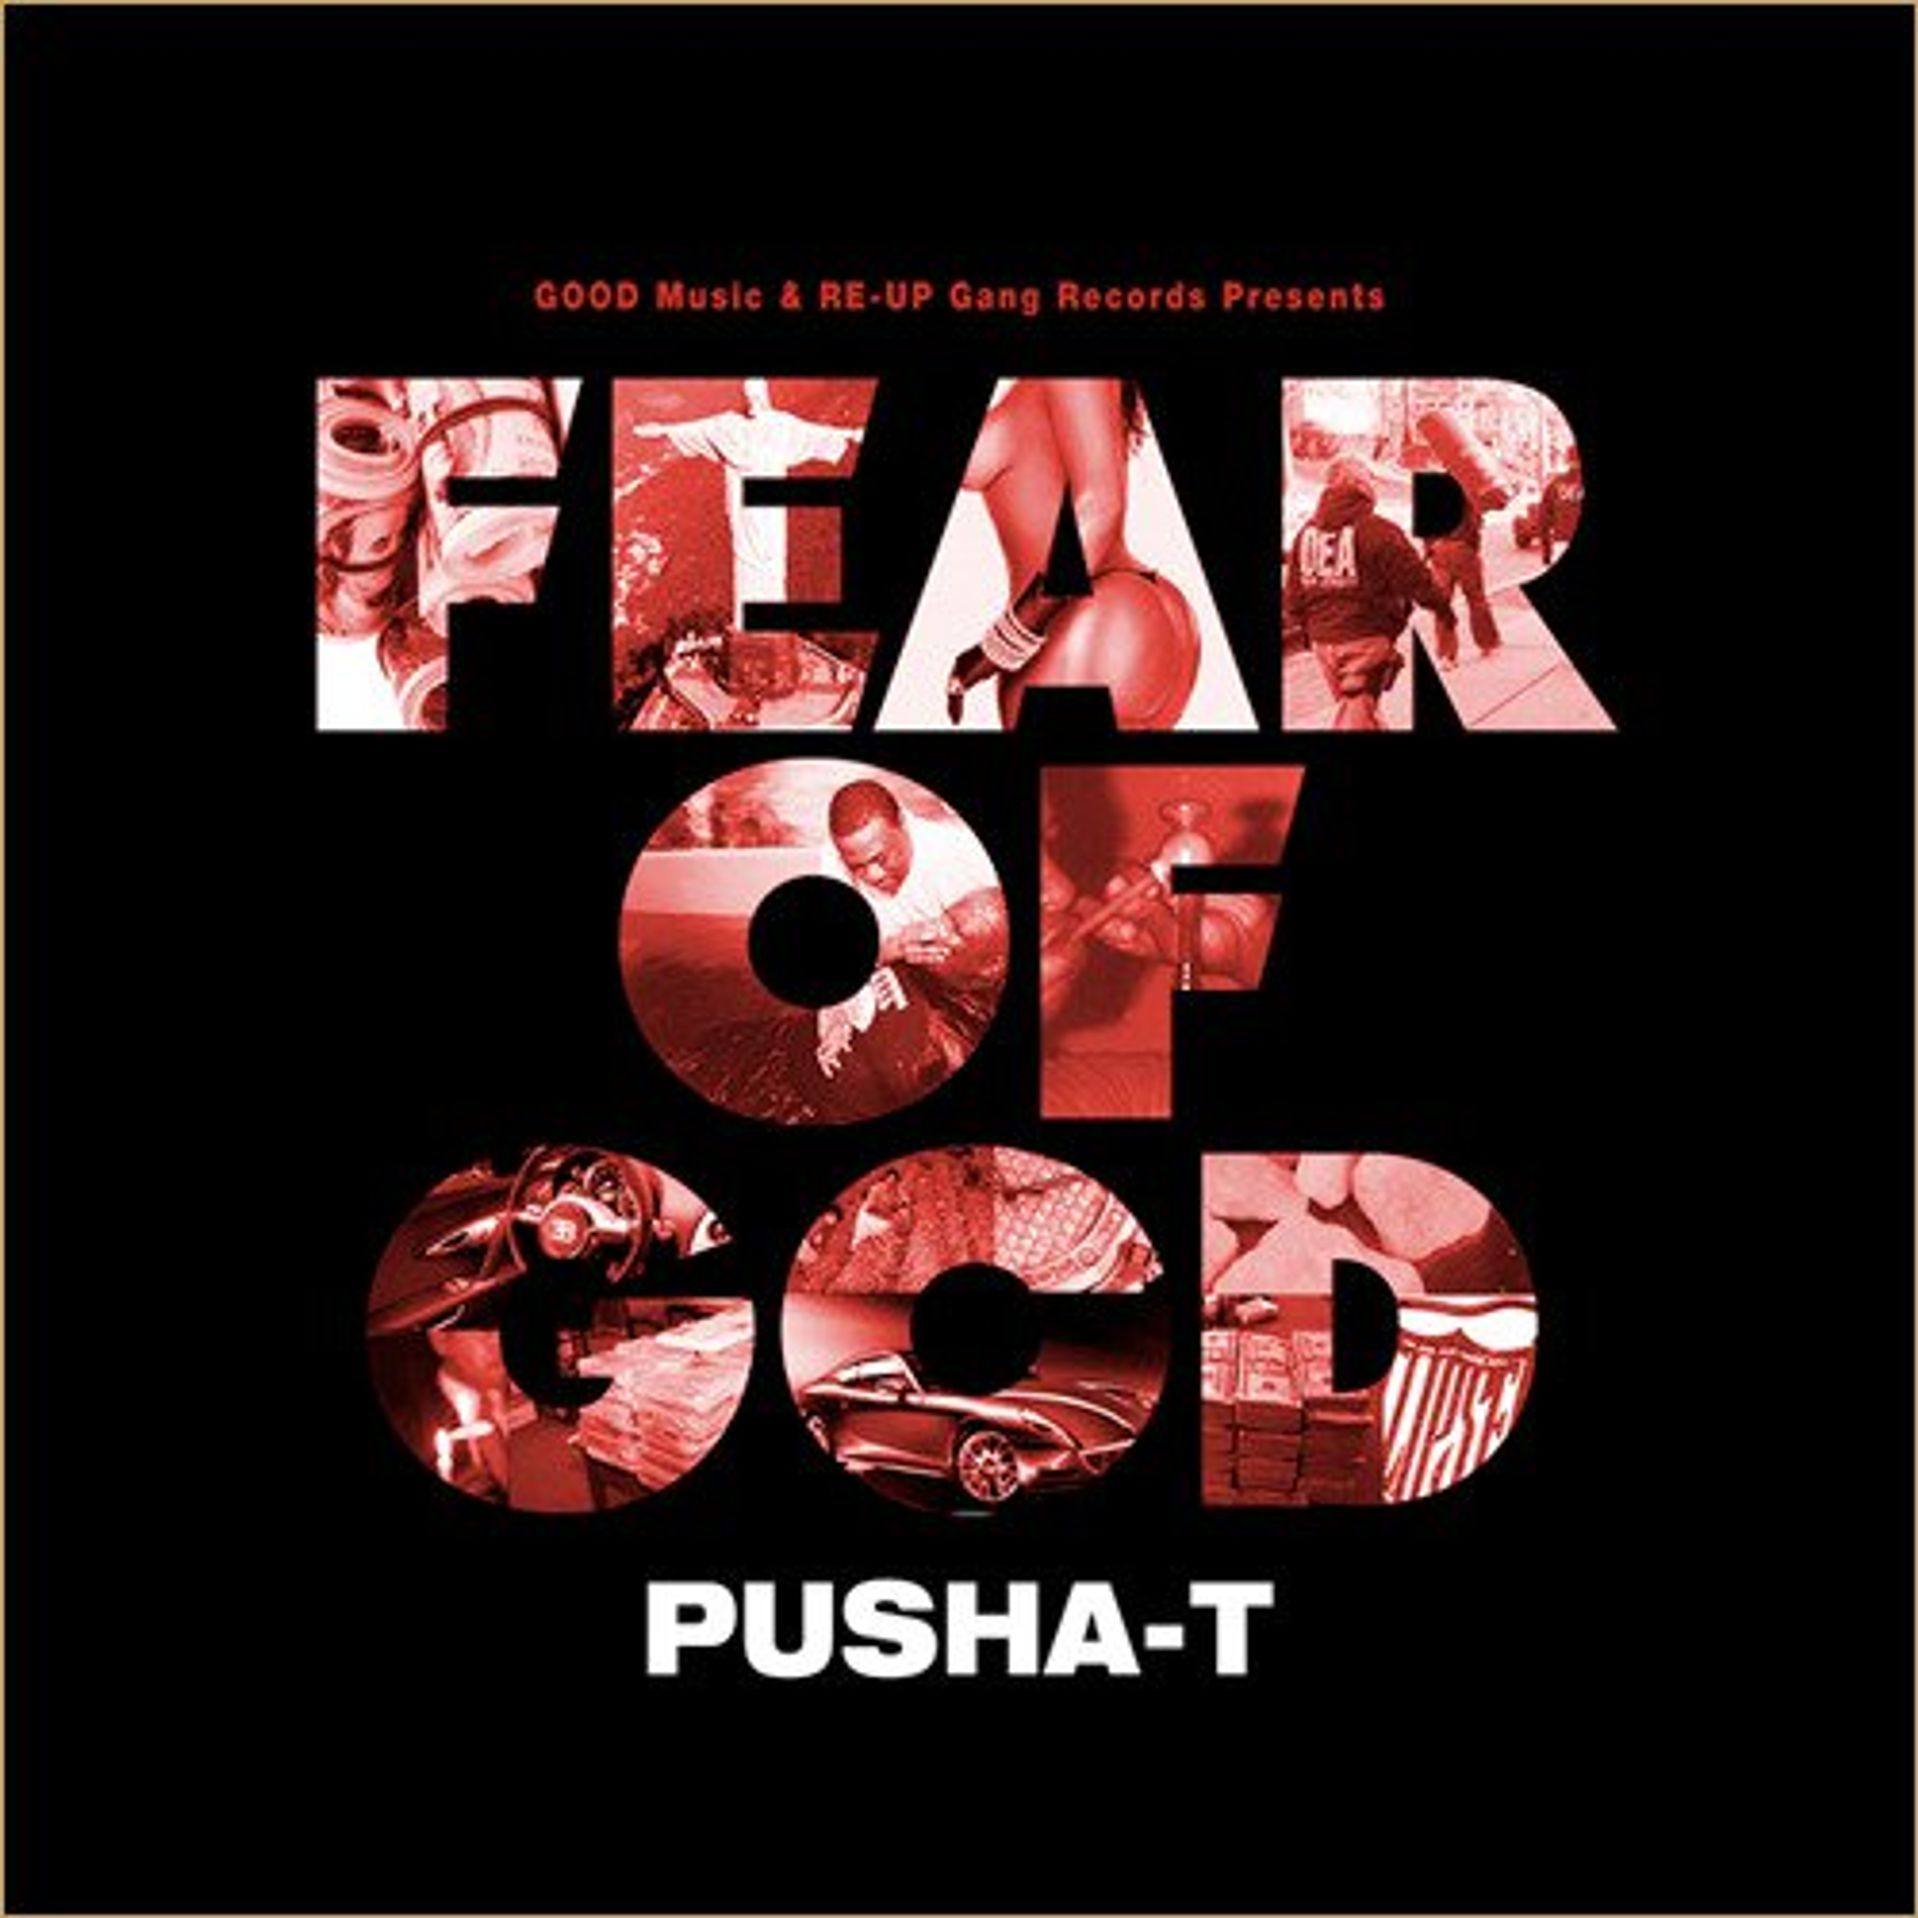 Album Title: Fear of God by: Pusha T